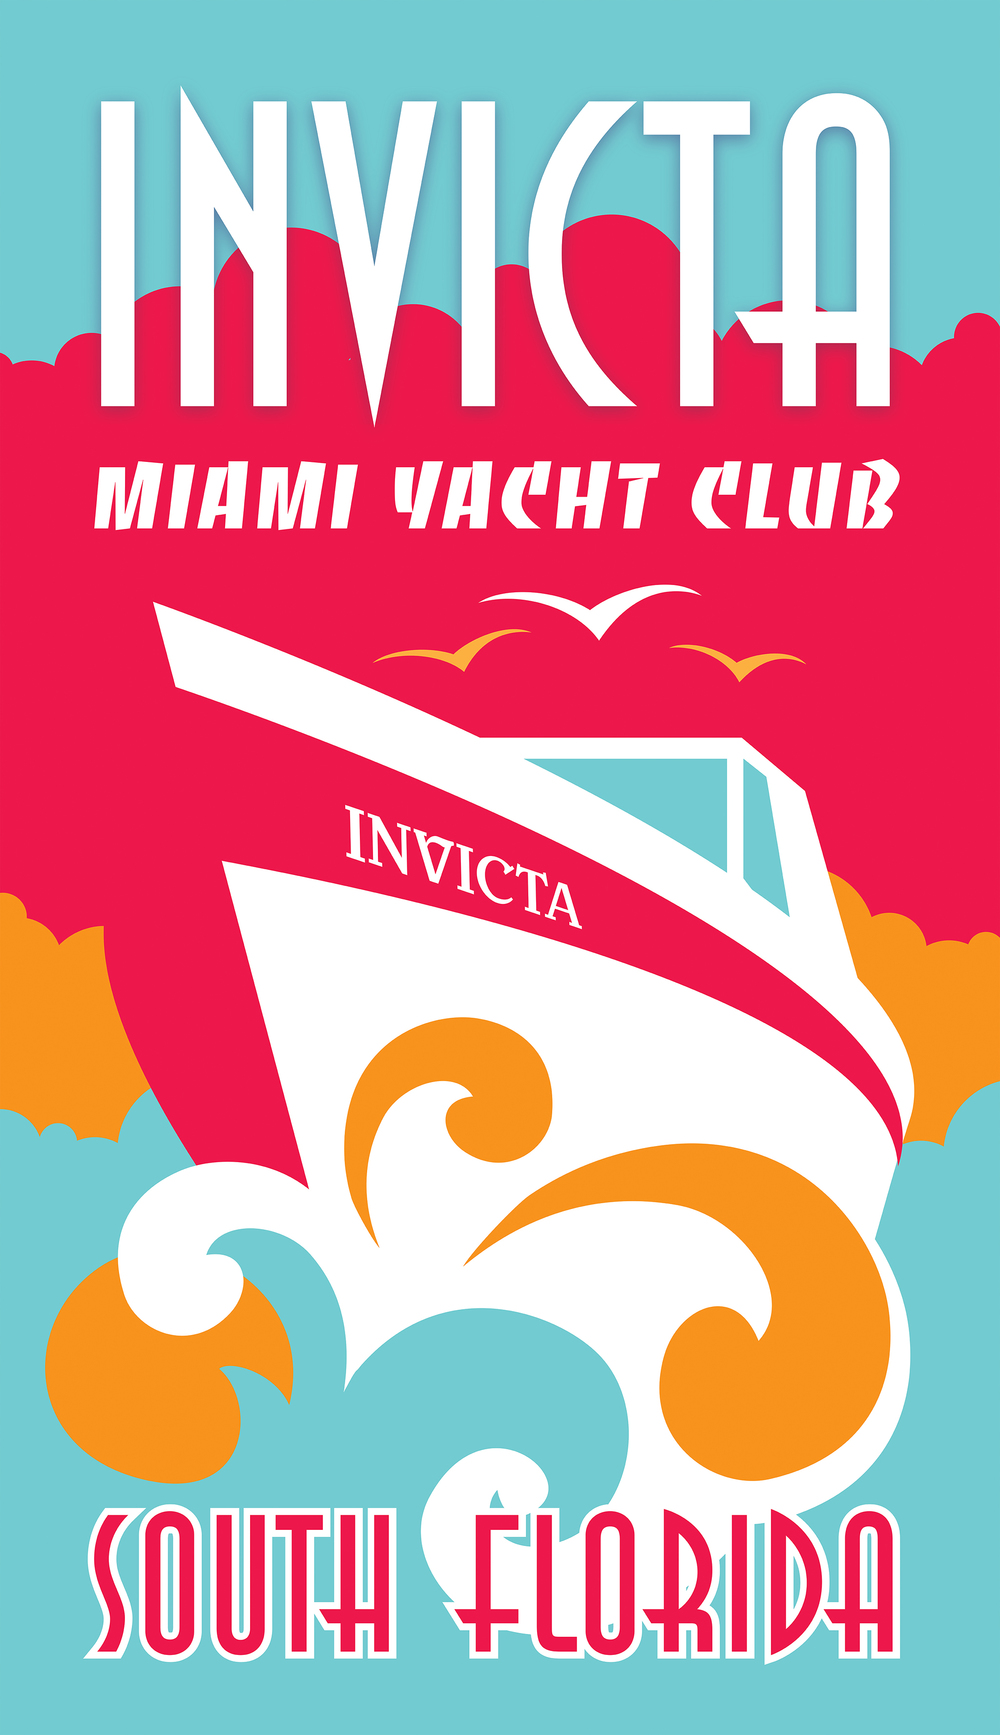 IN_WJ_Poster_Miami_02.jpg